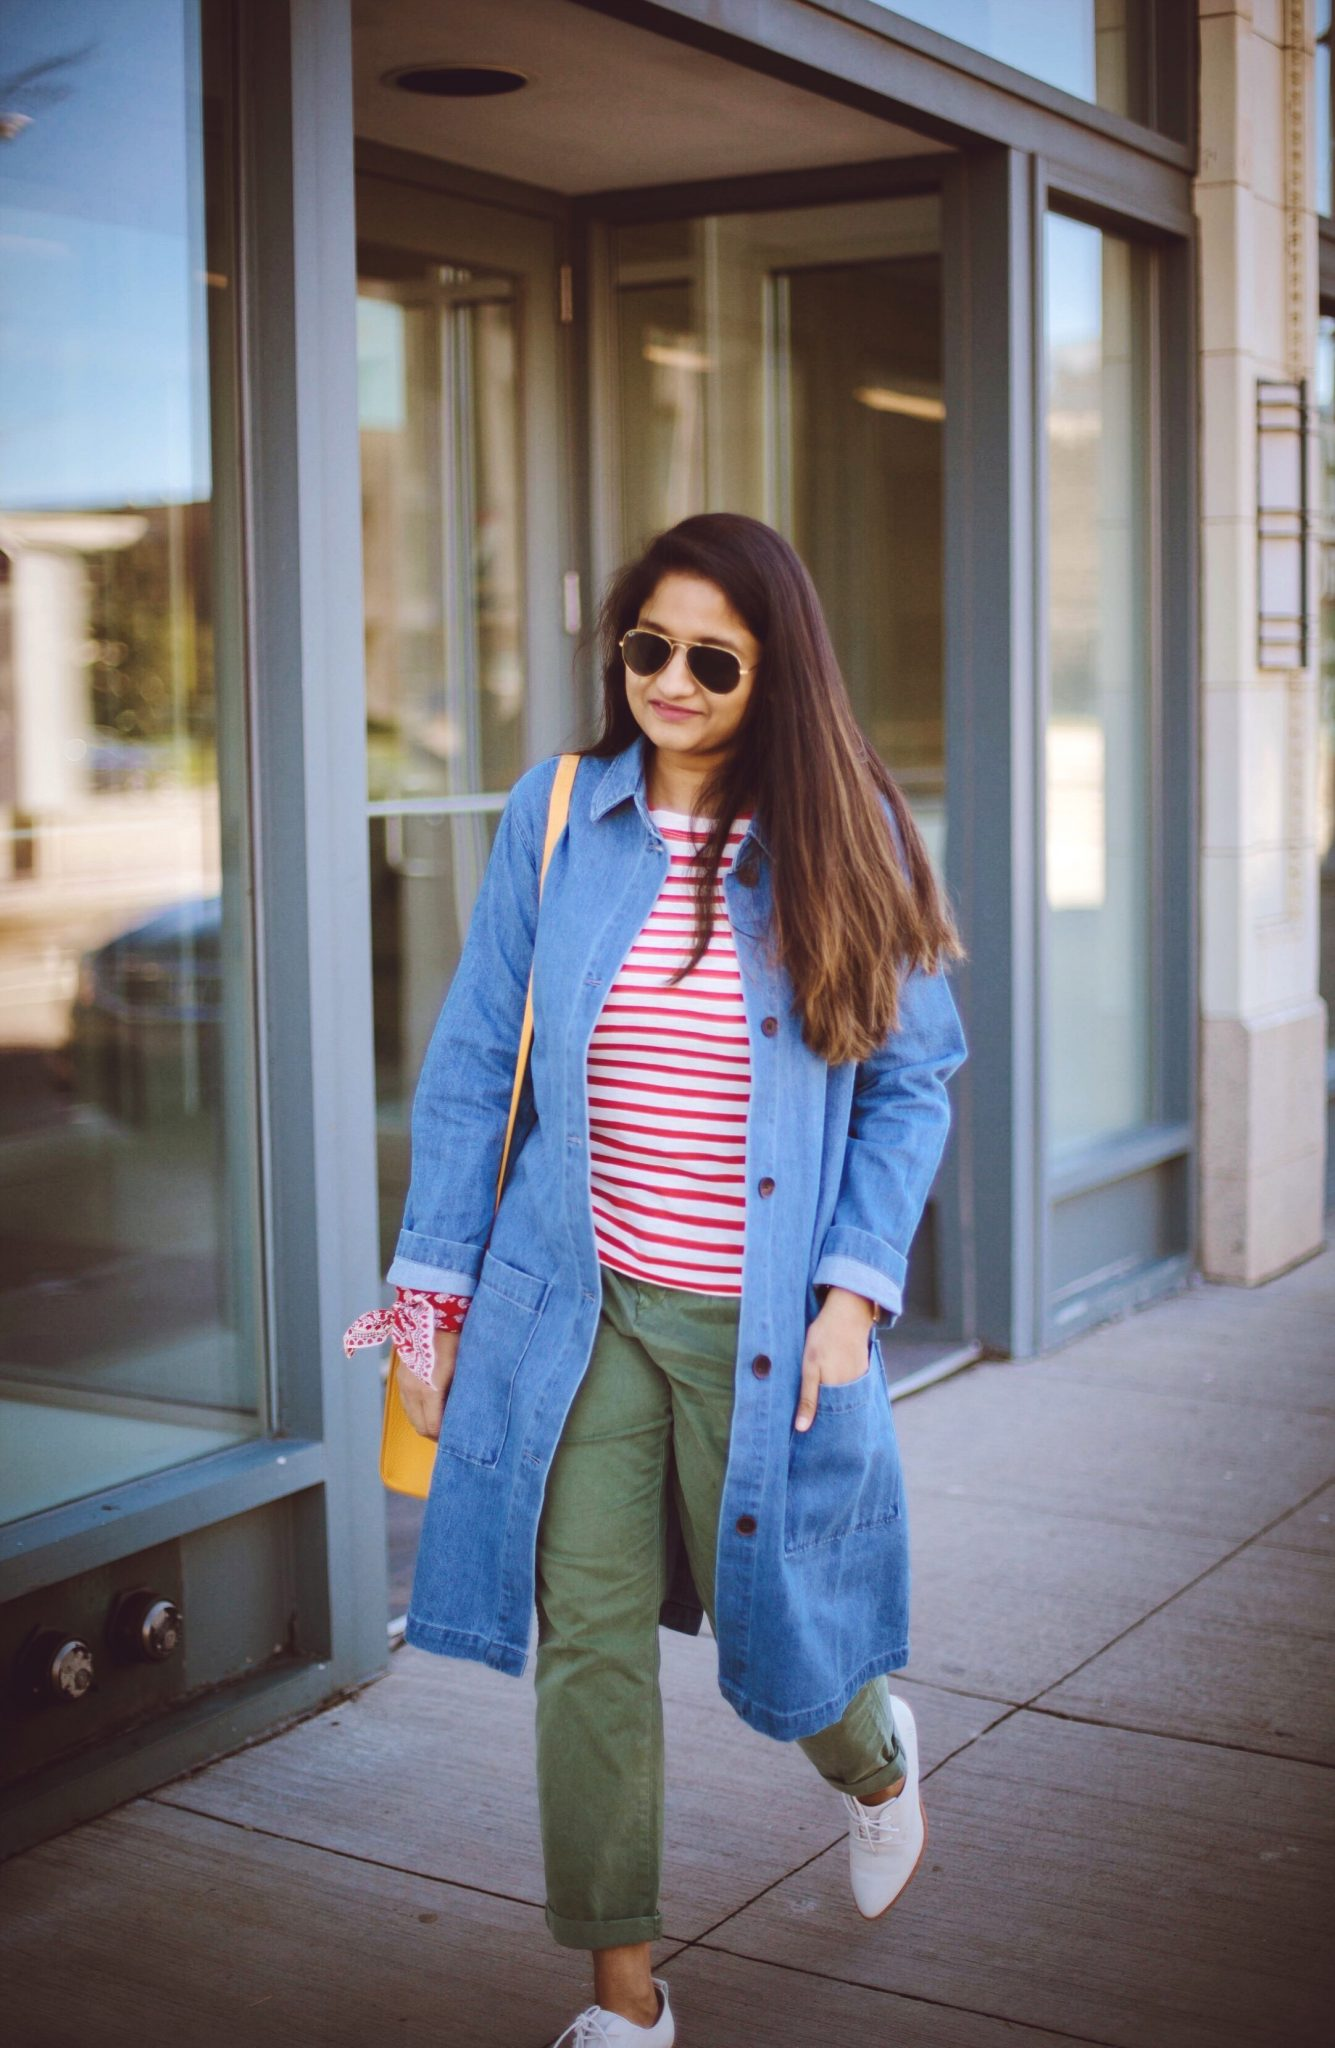 how-to-wear-khaki-pants-in-colorful-ways-1. - How To Wear Khaki featured by popular modest fashion blogger, Dreaming Loud